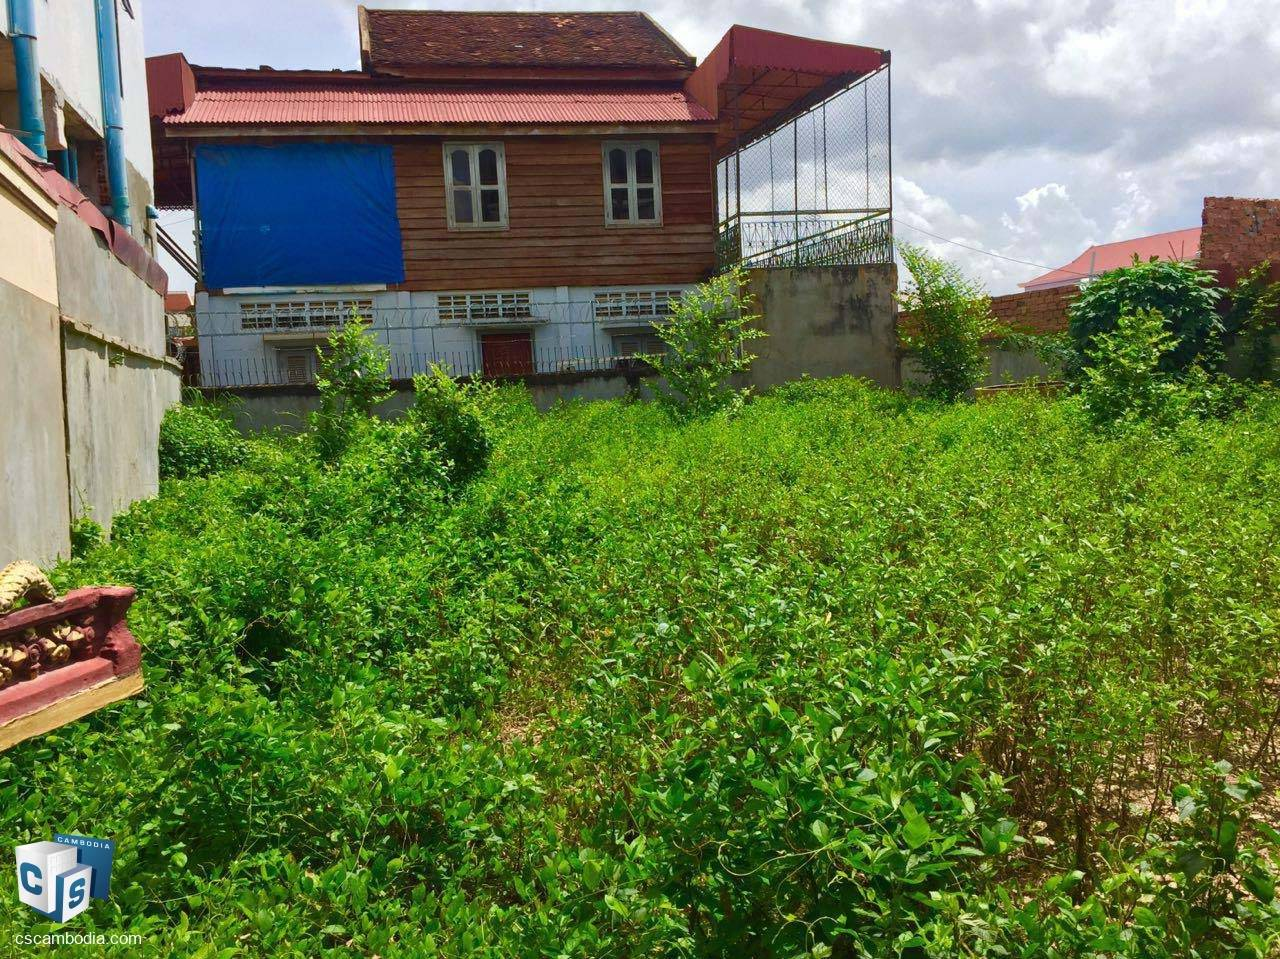 209 Sq Meters of Land – For Rent – Steung Thmei Village –Svay Dangkum- Siem Reap